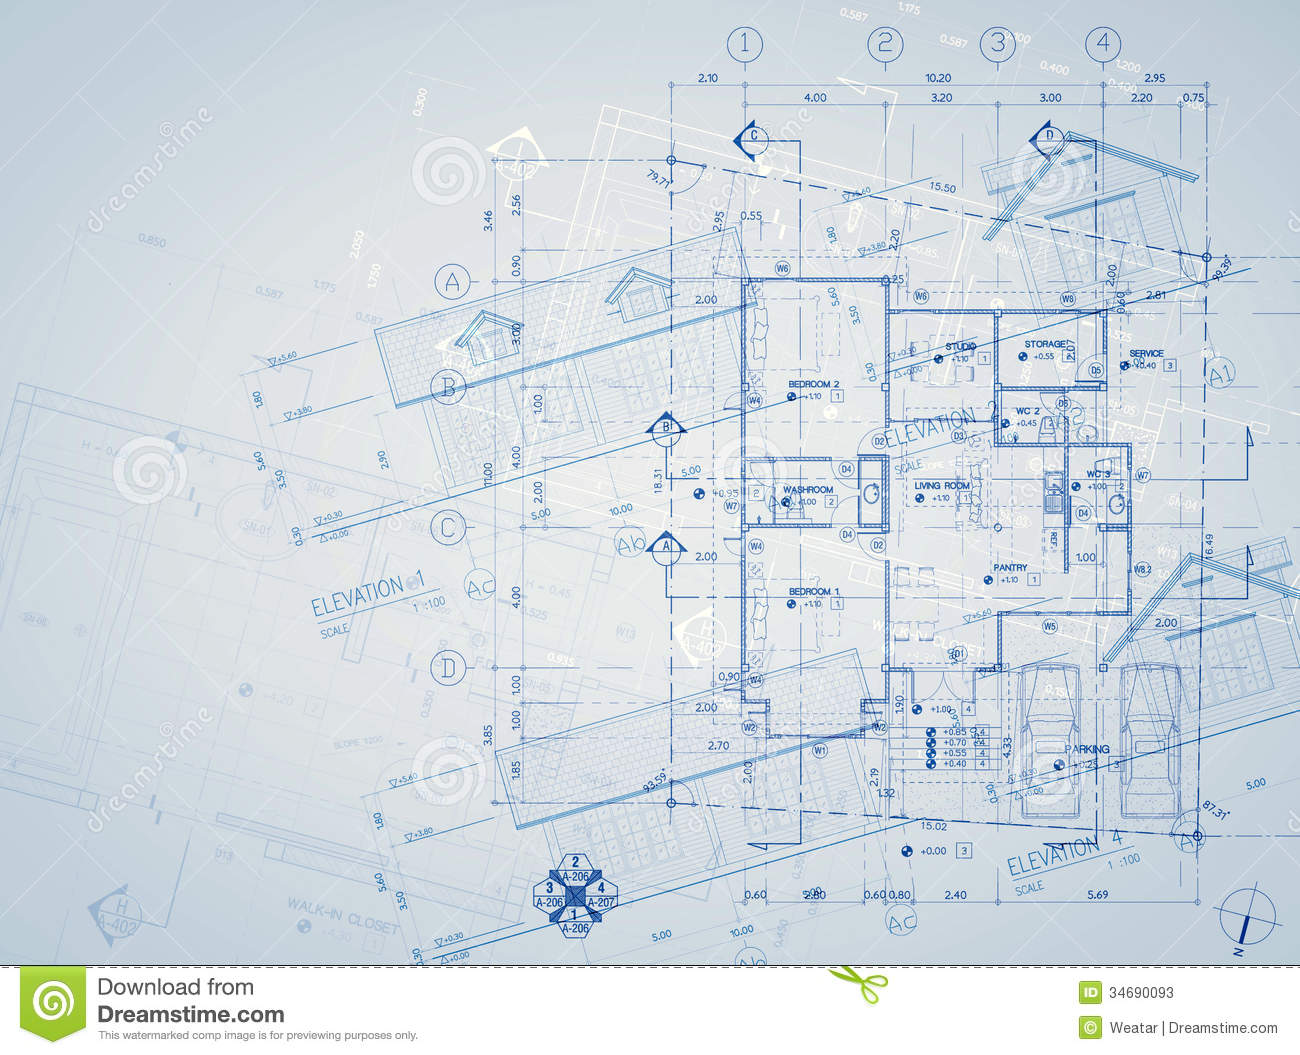 Elevation Plan Blueprint : Blueprint overlay stock image of ideas